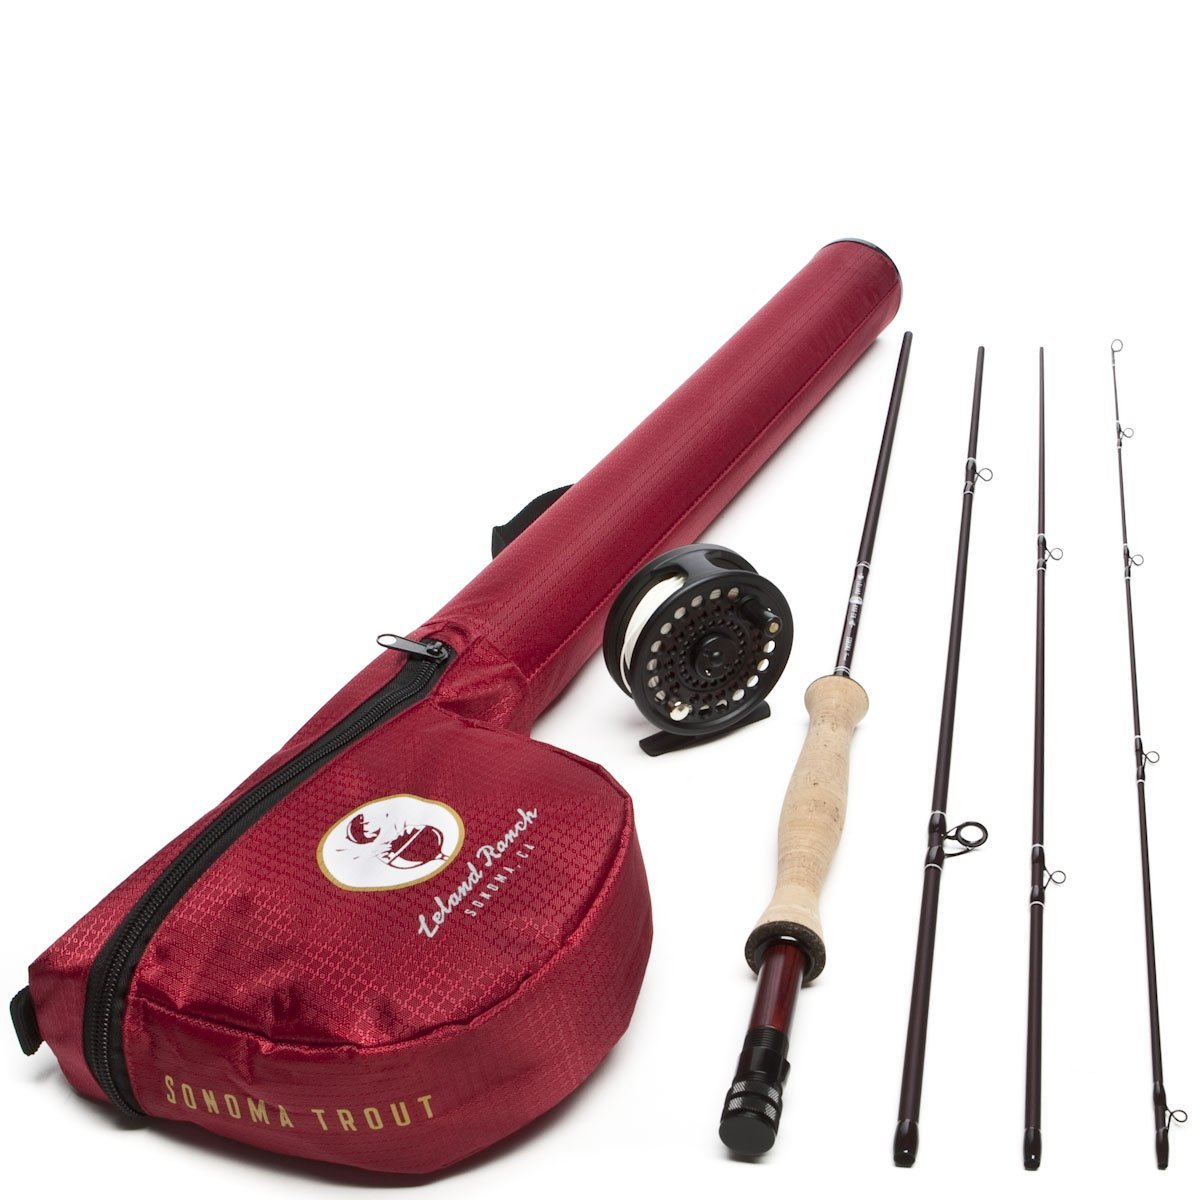 Leland rod co sonoma starter trout fly fishing combo for Best fishing combo